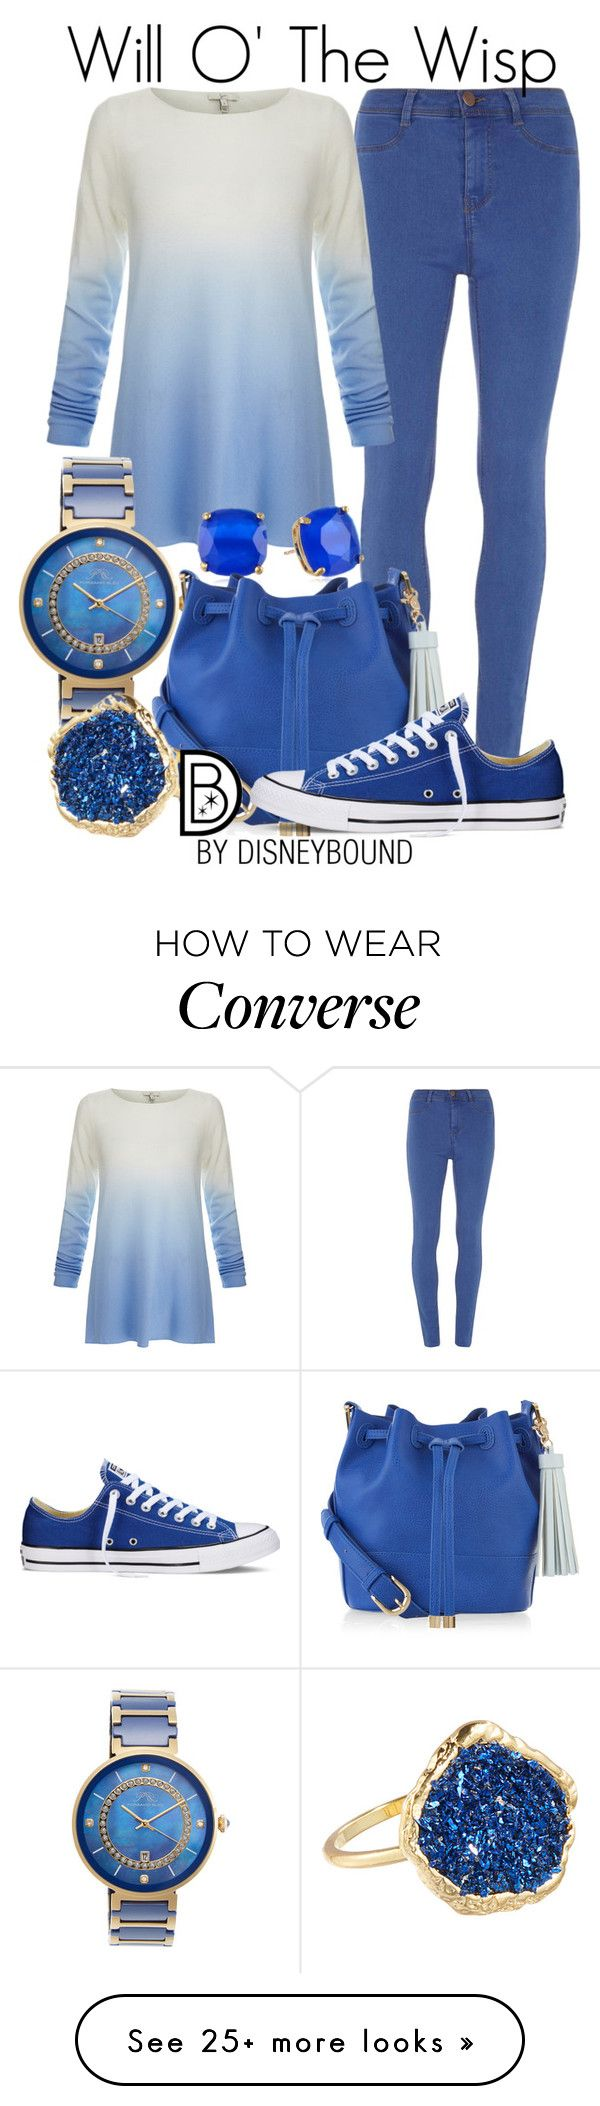 """""""Will O' The Wisp"""" by leslieakay on Polyvore featuring Dorothy Perkins, Joie, Porsamo Bleu, Kate Spade, Accessorize, Converse, Accentuality, disney and disneybound"""